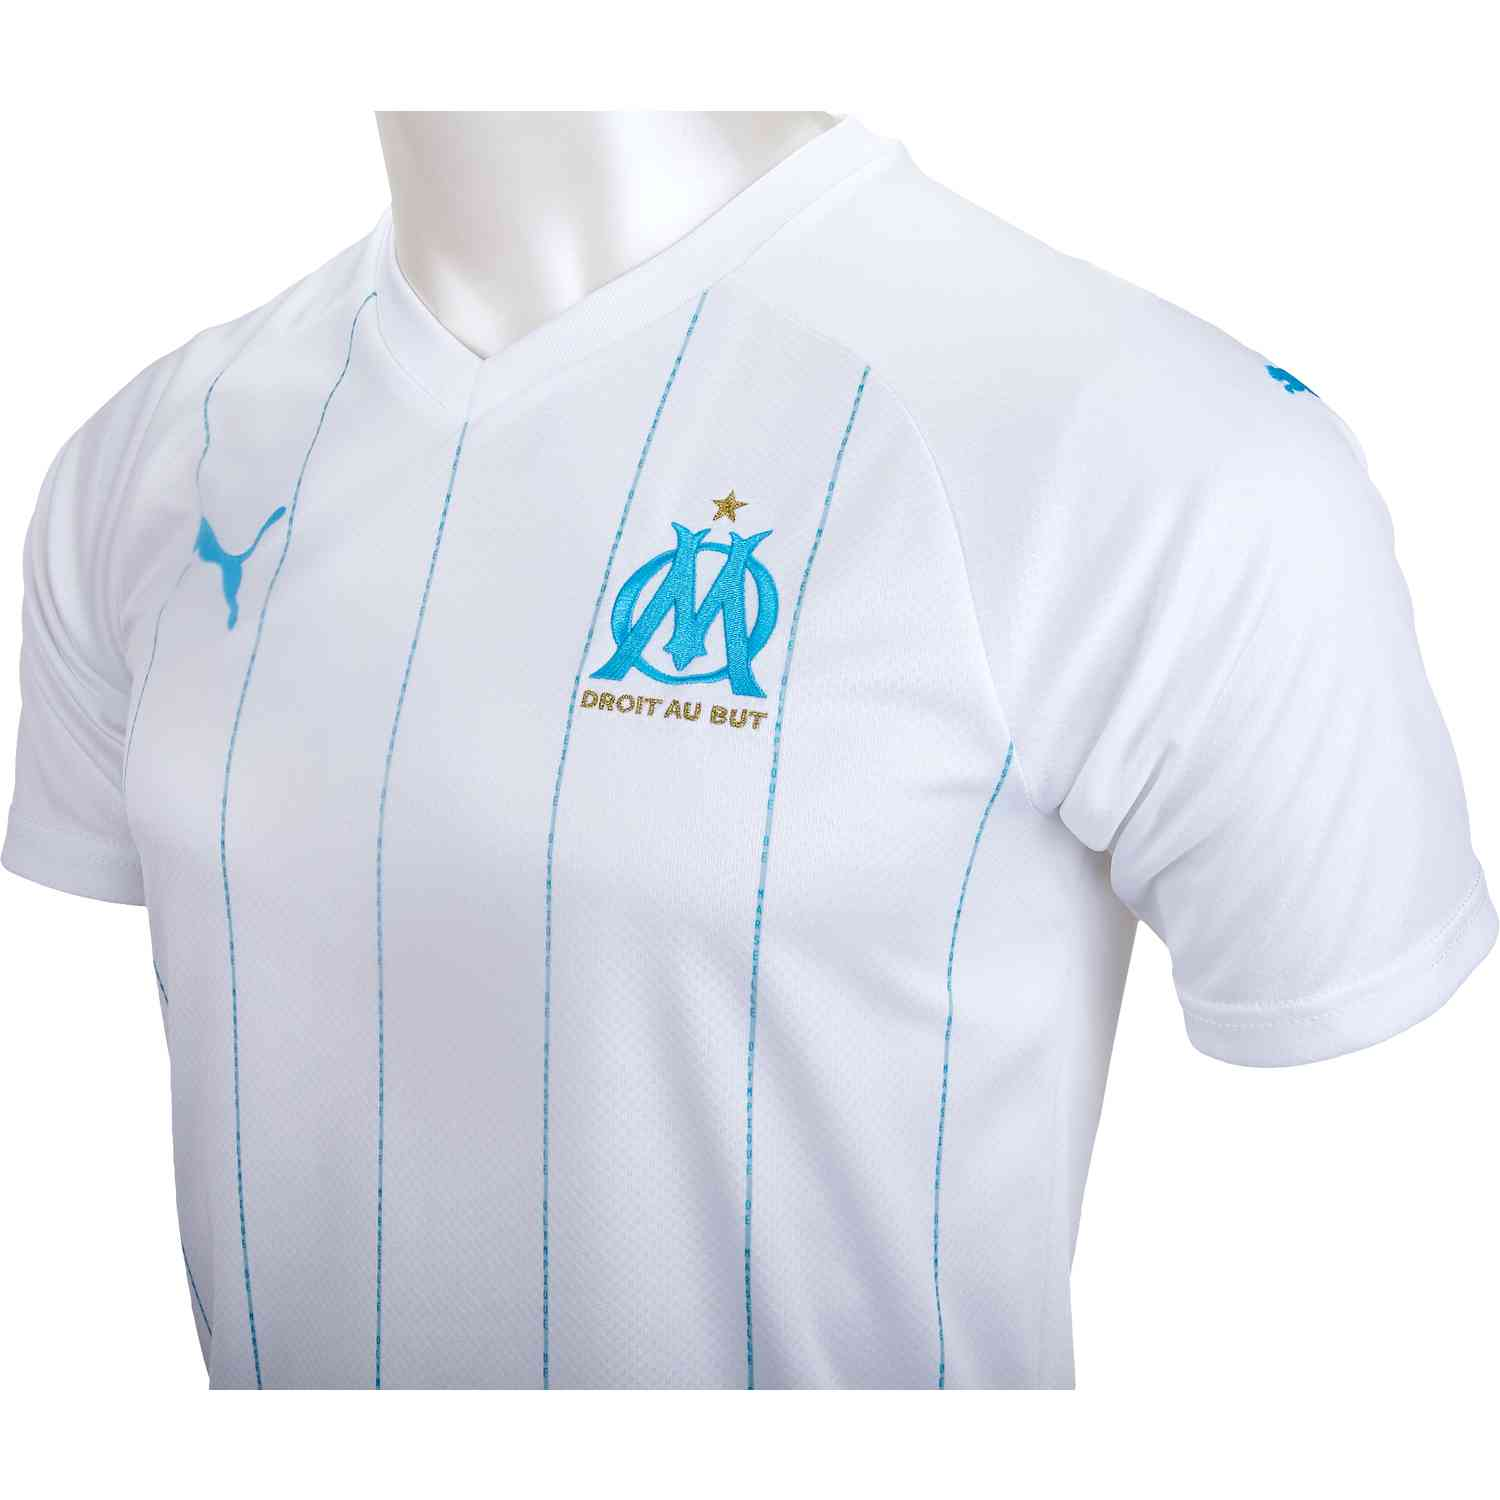 huge discount 6dd07 396f2 Marseille Home Jersey - 2019/20 - Soccer Master